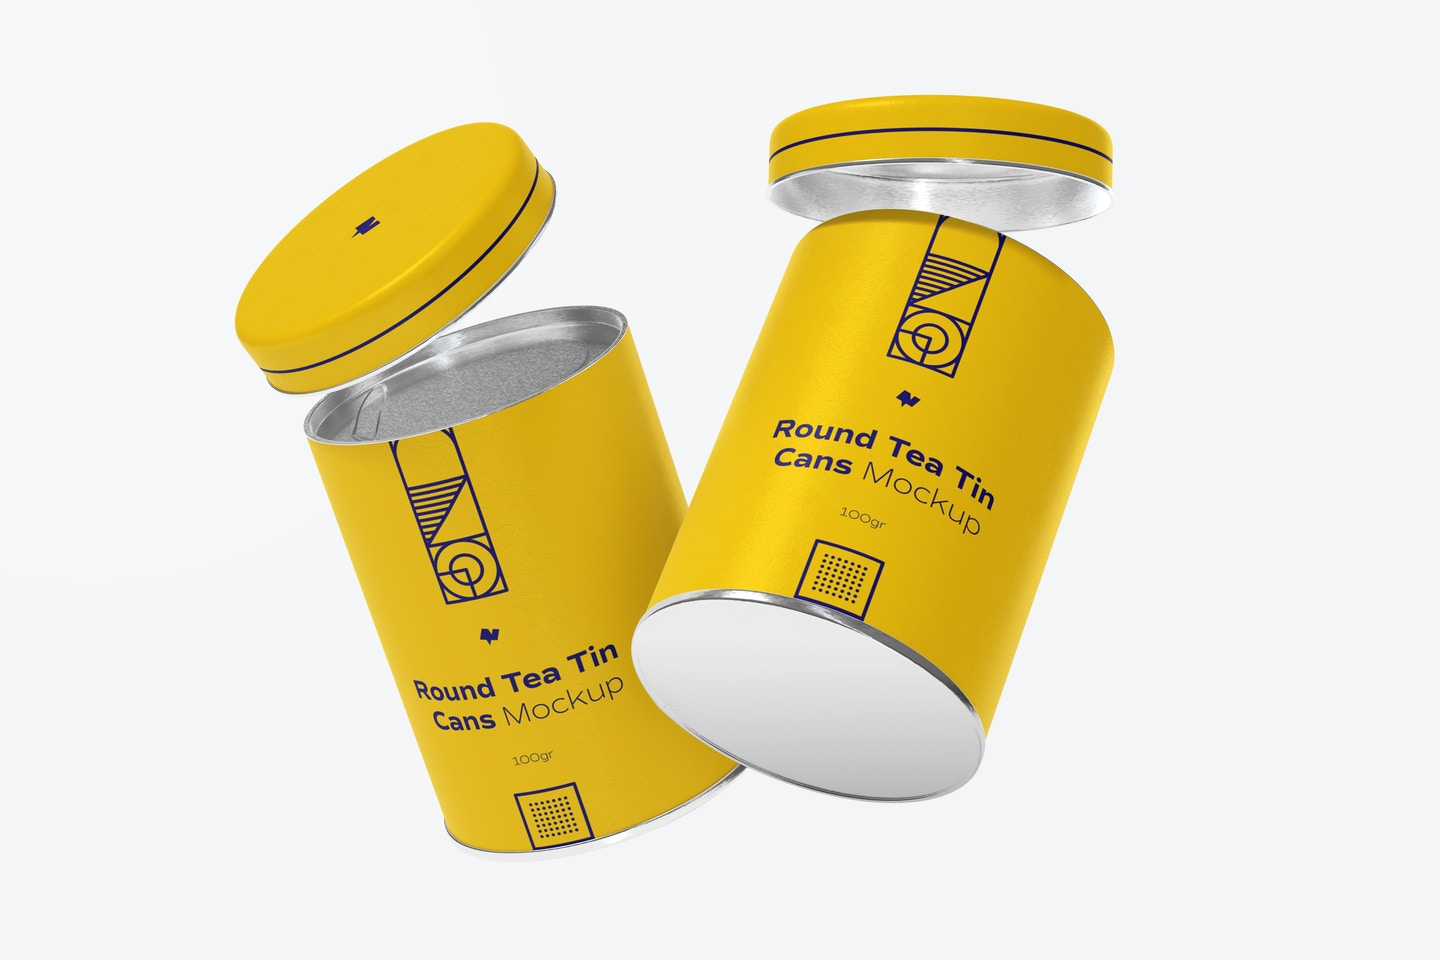 Round Tea Tin Cans Mockup, Floating